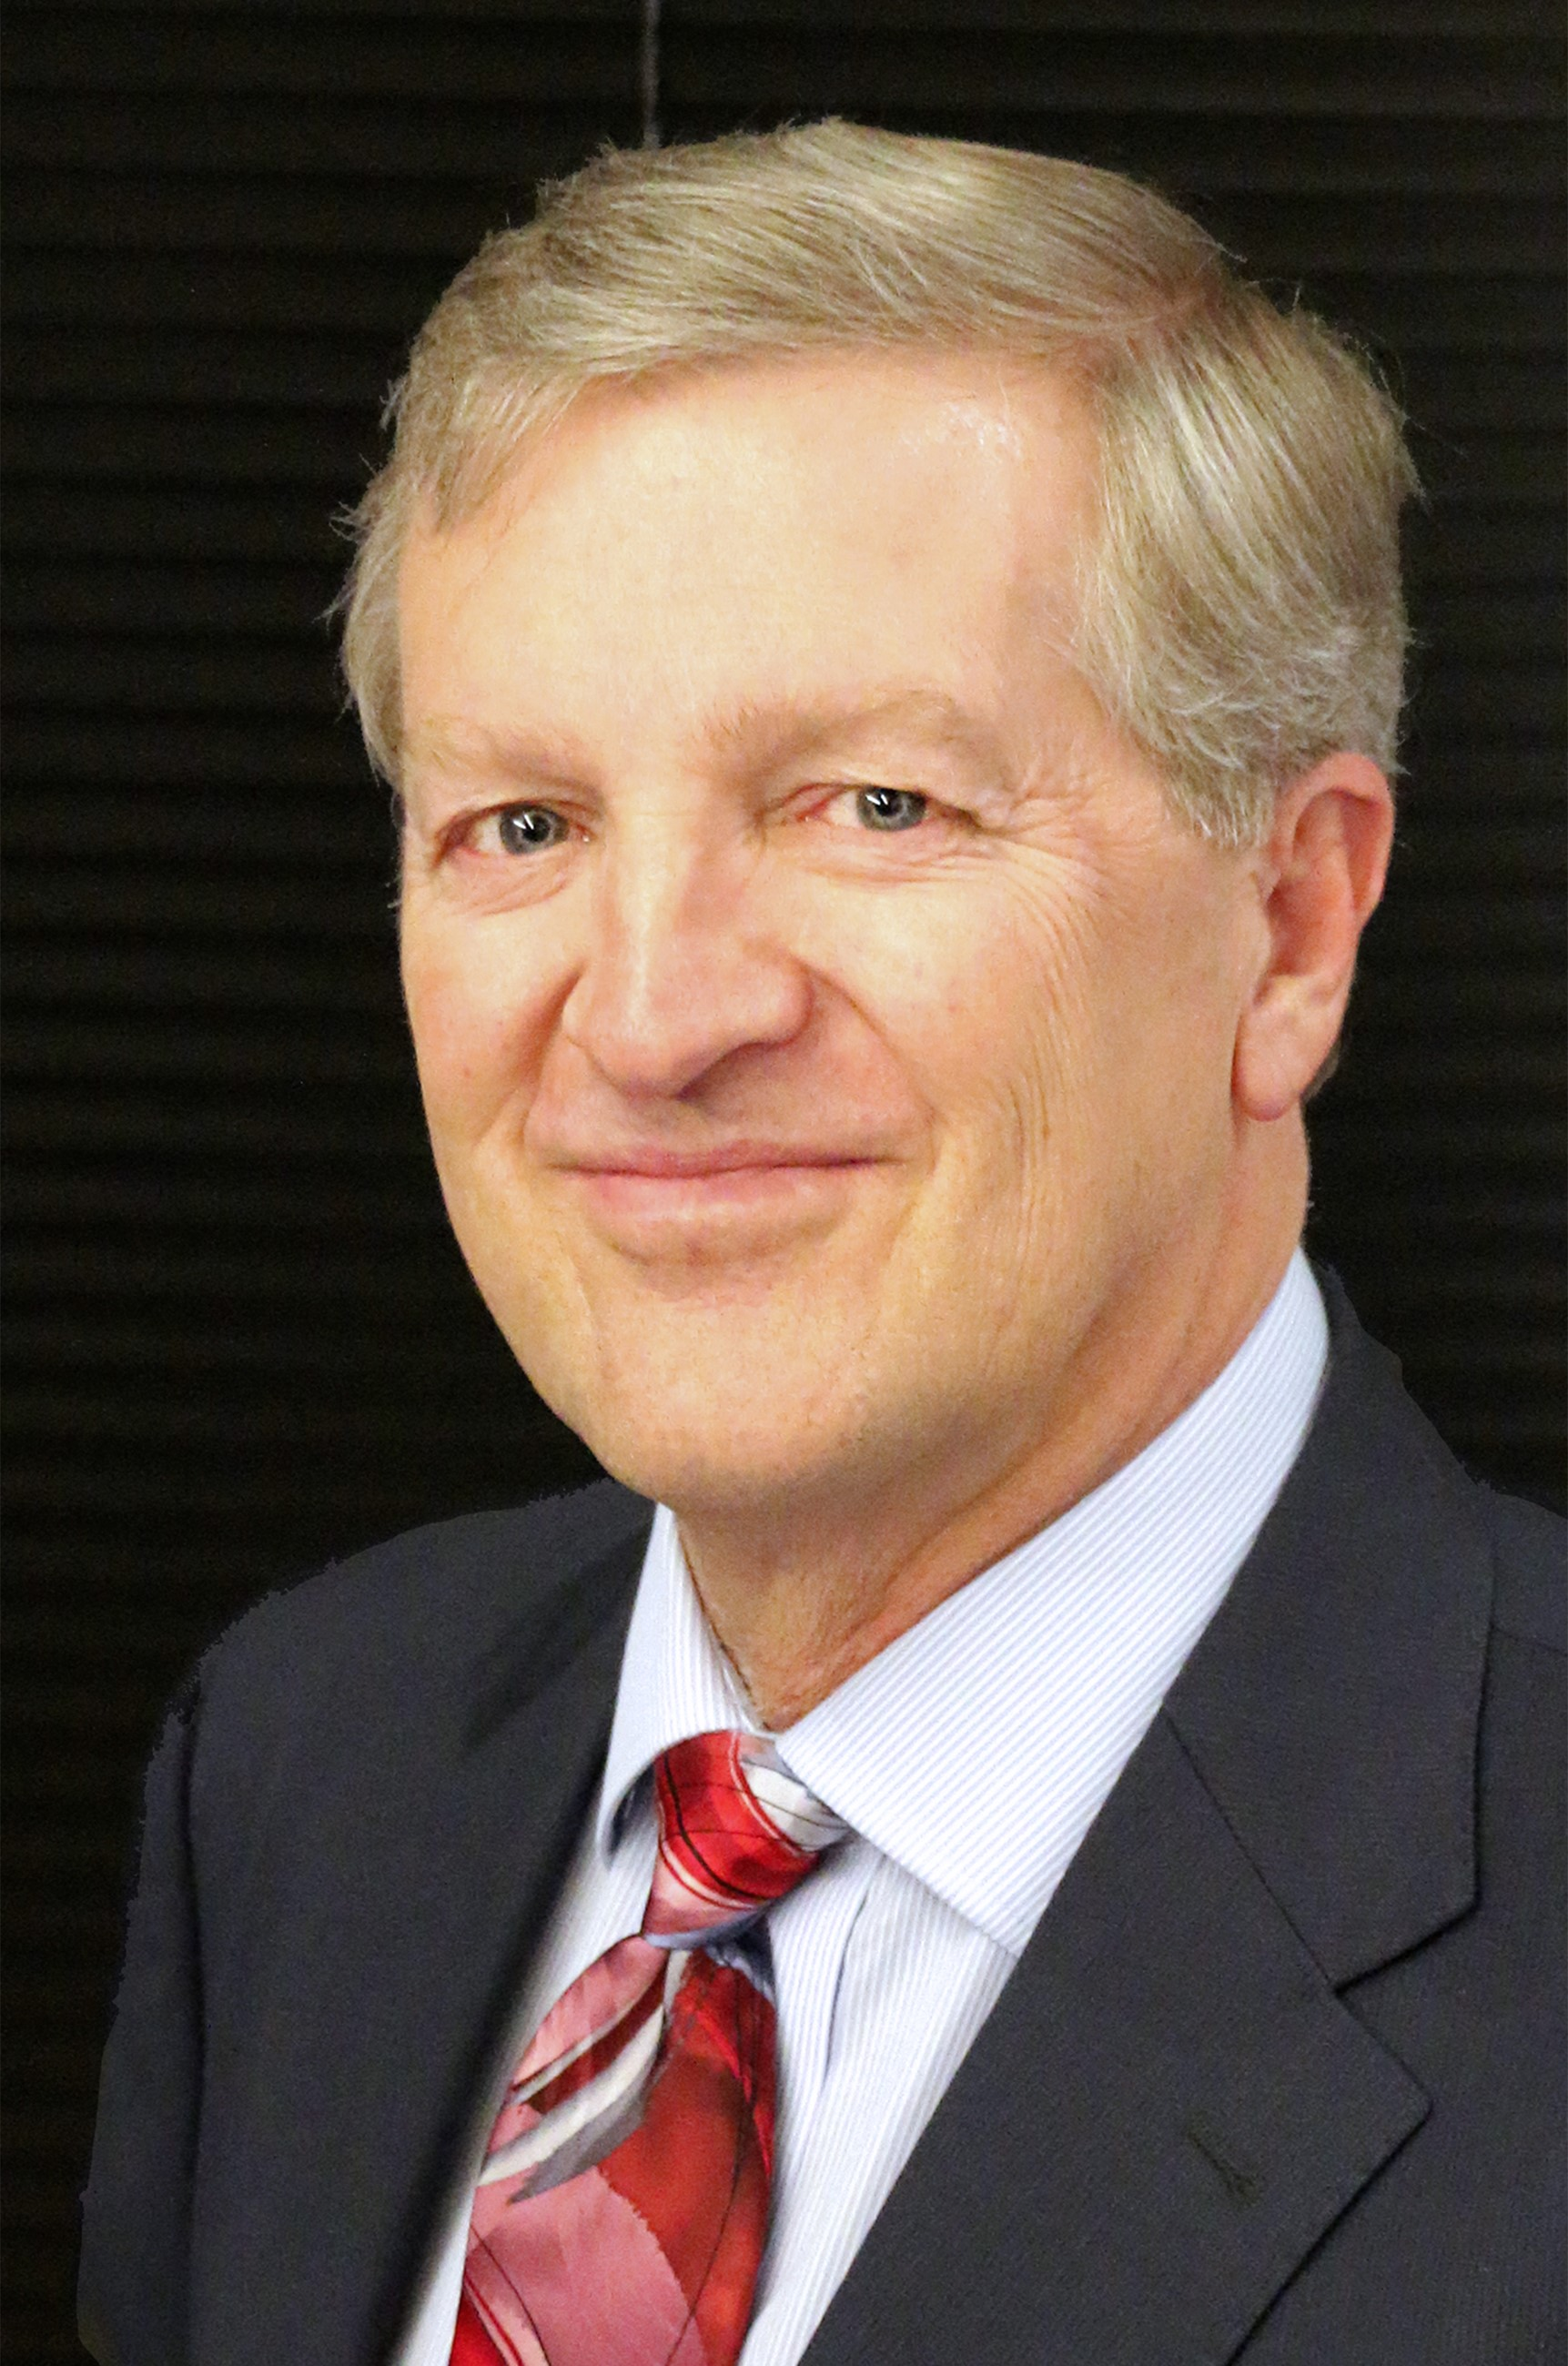 Mayor Randy Ahrens March 2017